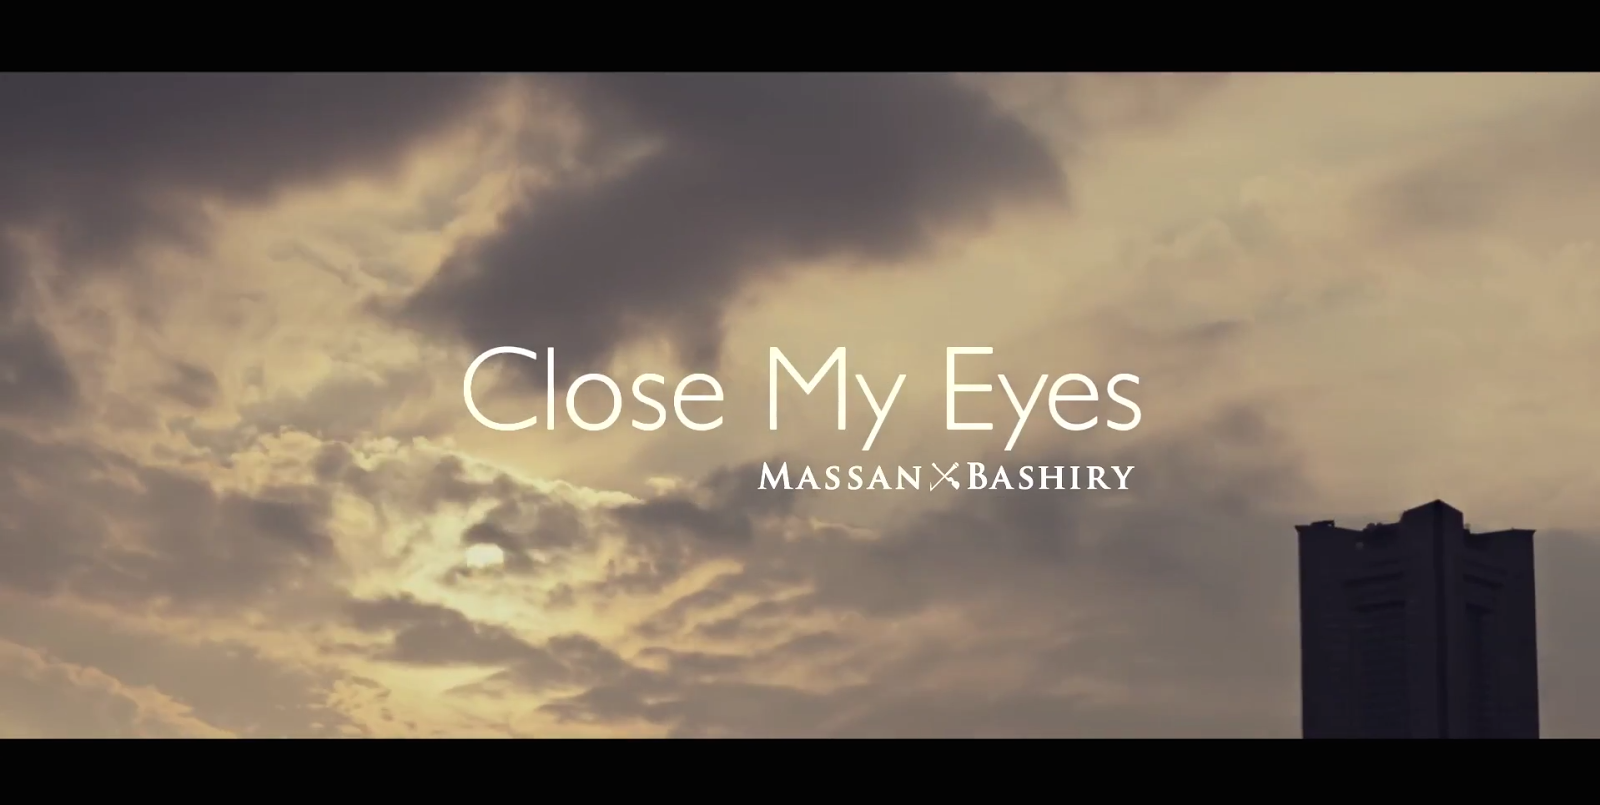 MASSAN×BASHIRY - Close My Eyes